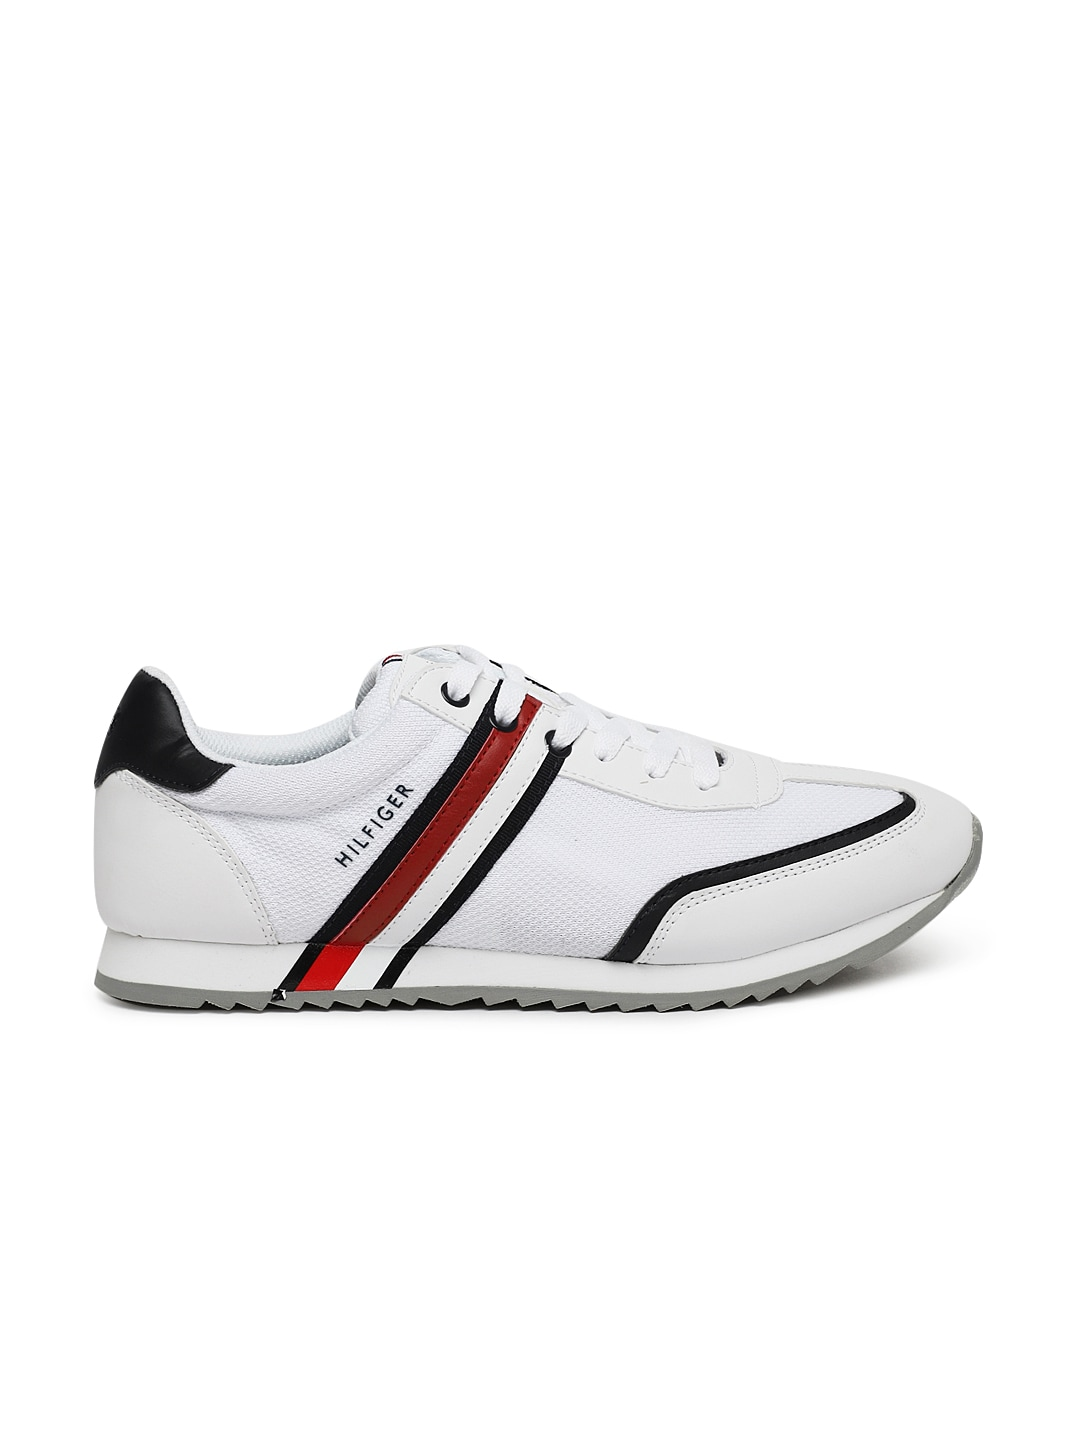 03875ba3e748 Tommy Hilfiger Shoes - Buy Tommy Hilfiger Shoes Online - Myntra